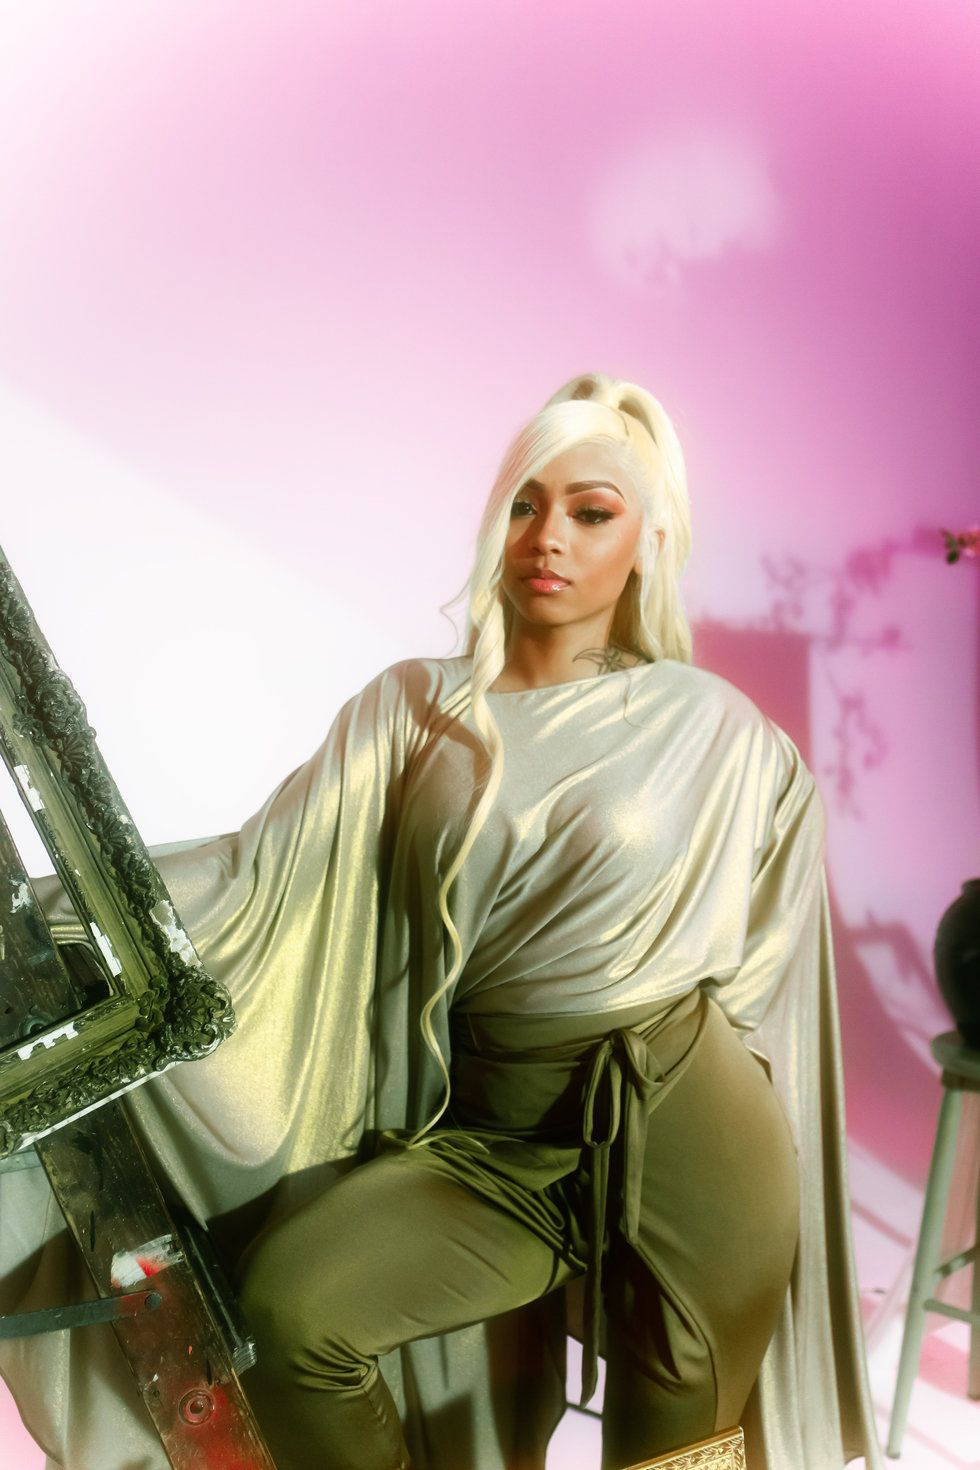 Saweetie, Rico Nasty, and Maliibu Miitch: Voices of Our